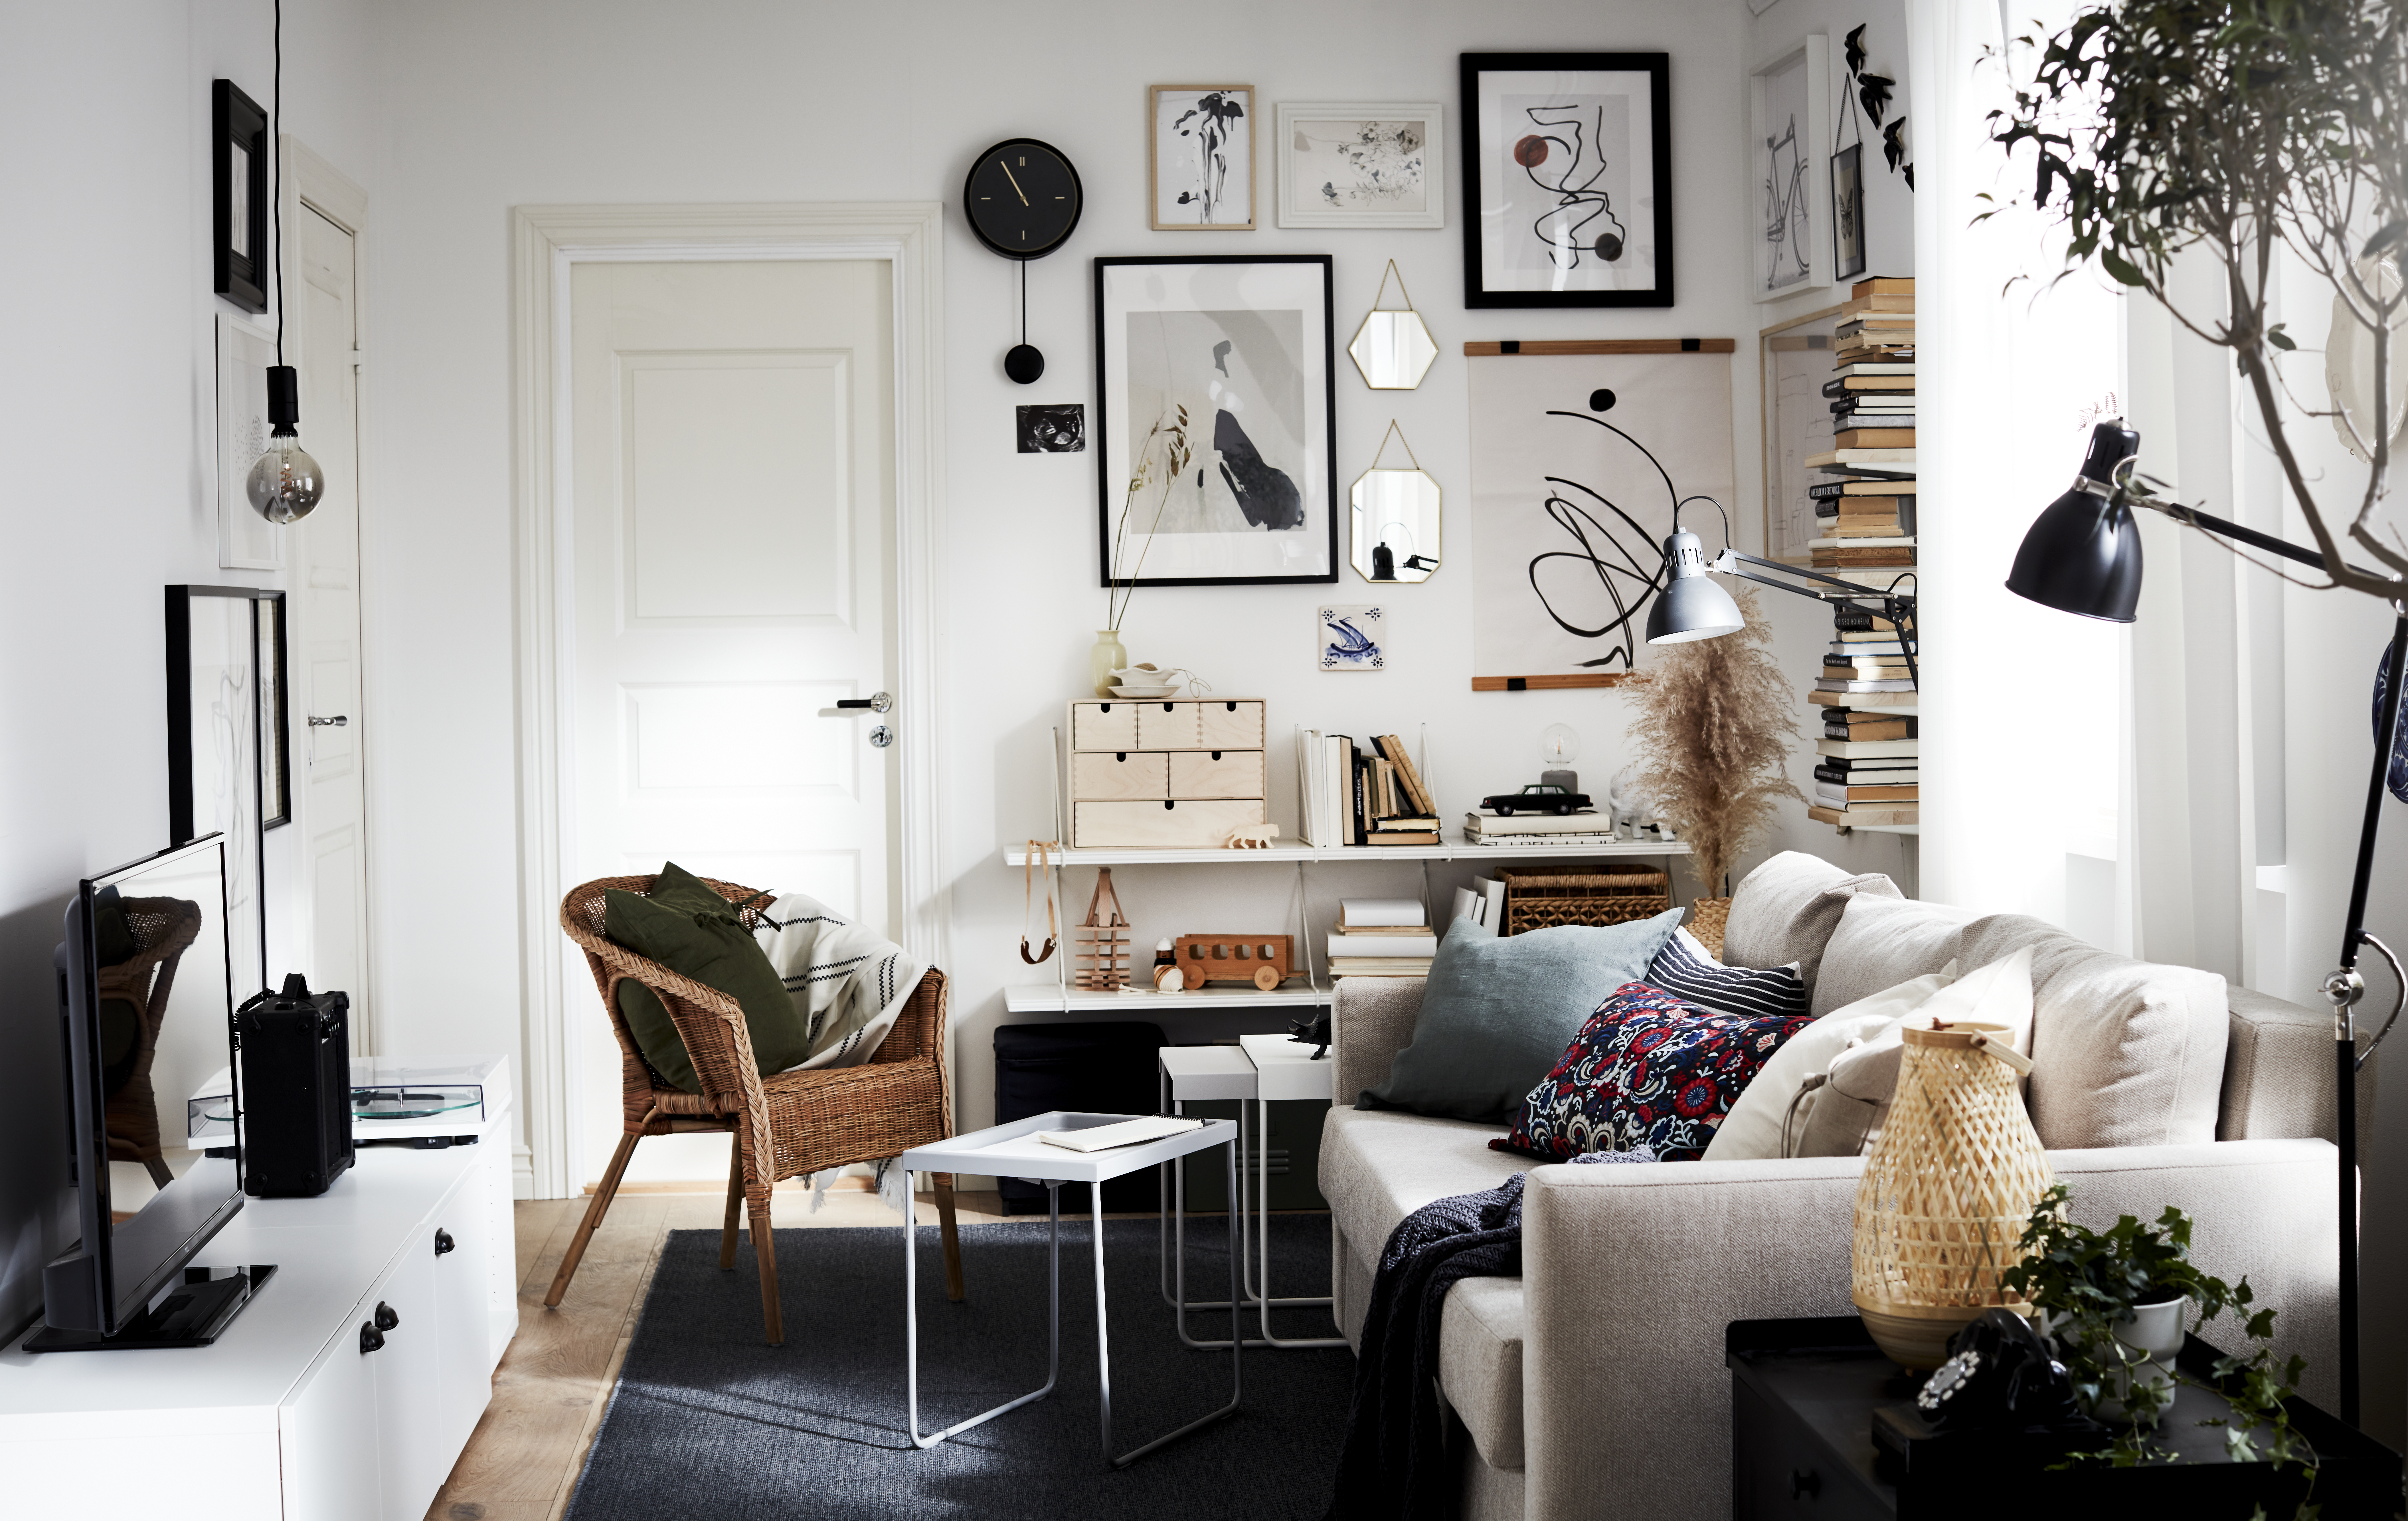 The Best New Living Room Finds From The IKEA 2021 Catalog | Apartment Therapy